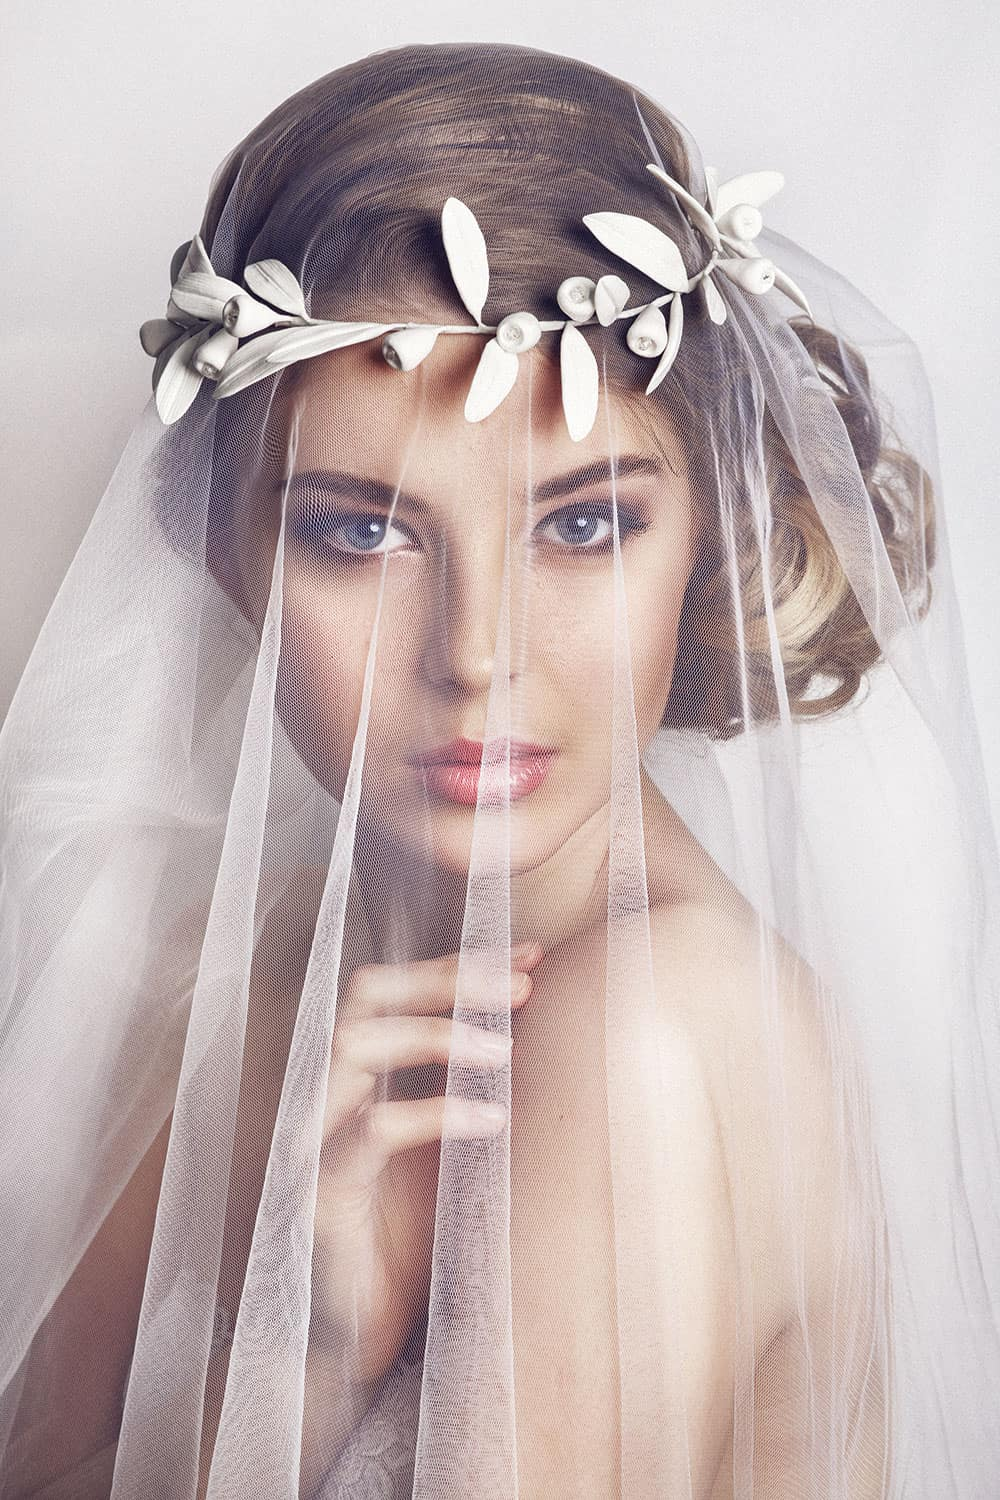 Spring bridal hair up-do style with veil and flowe crown.